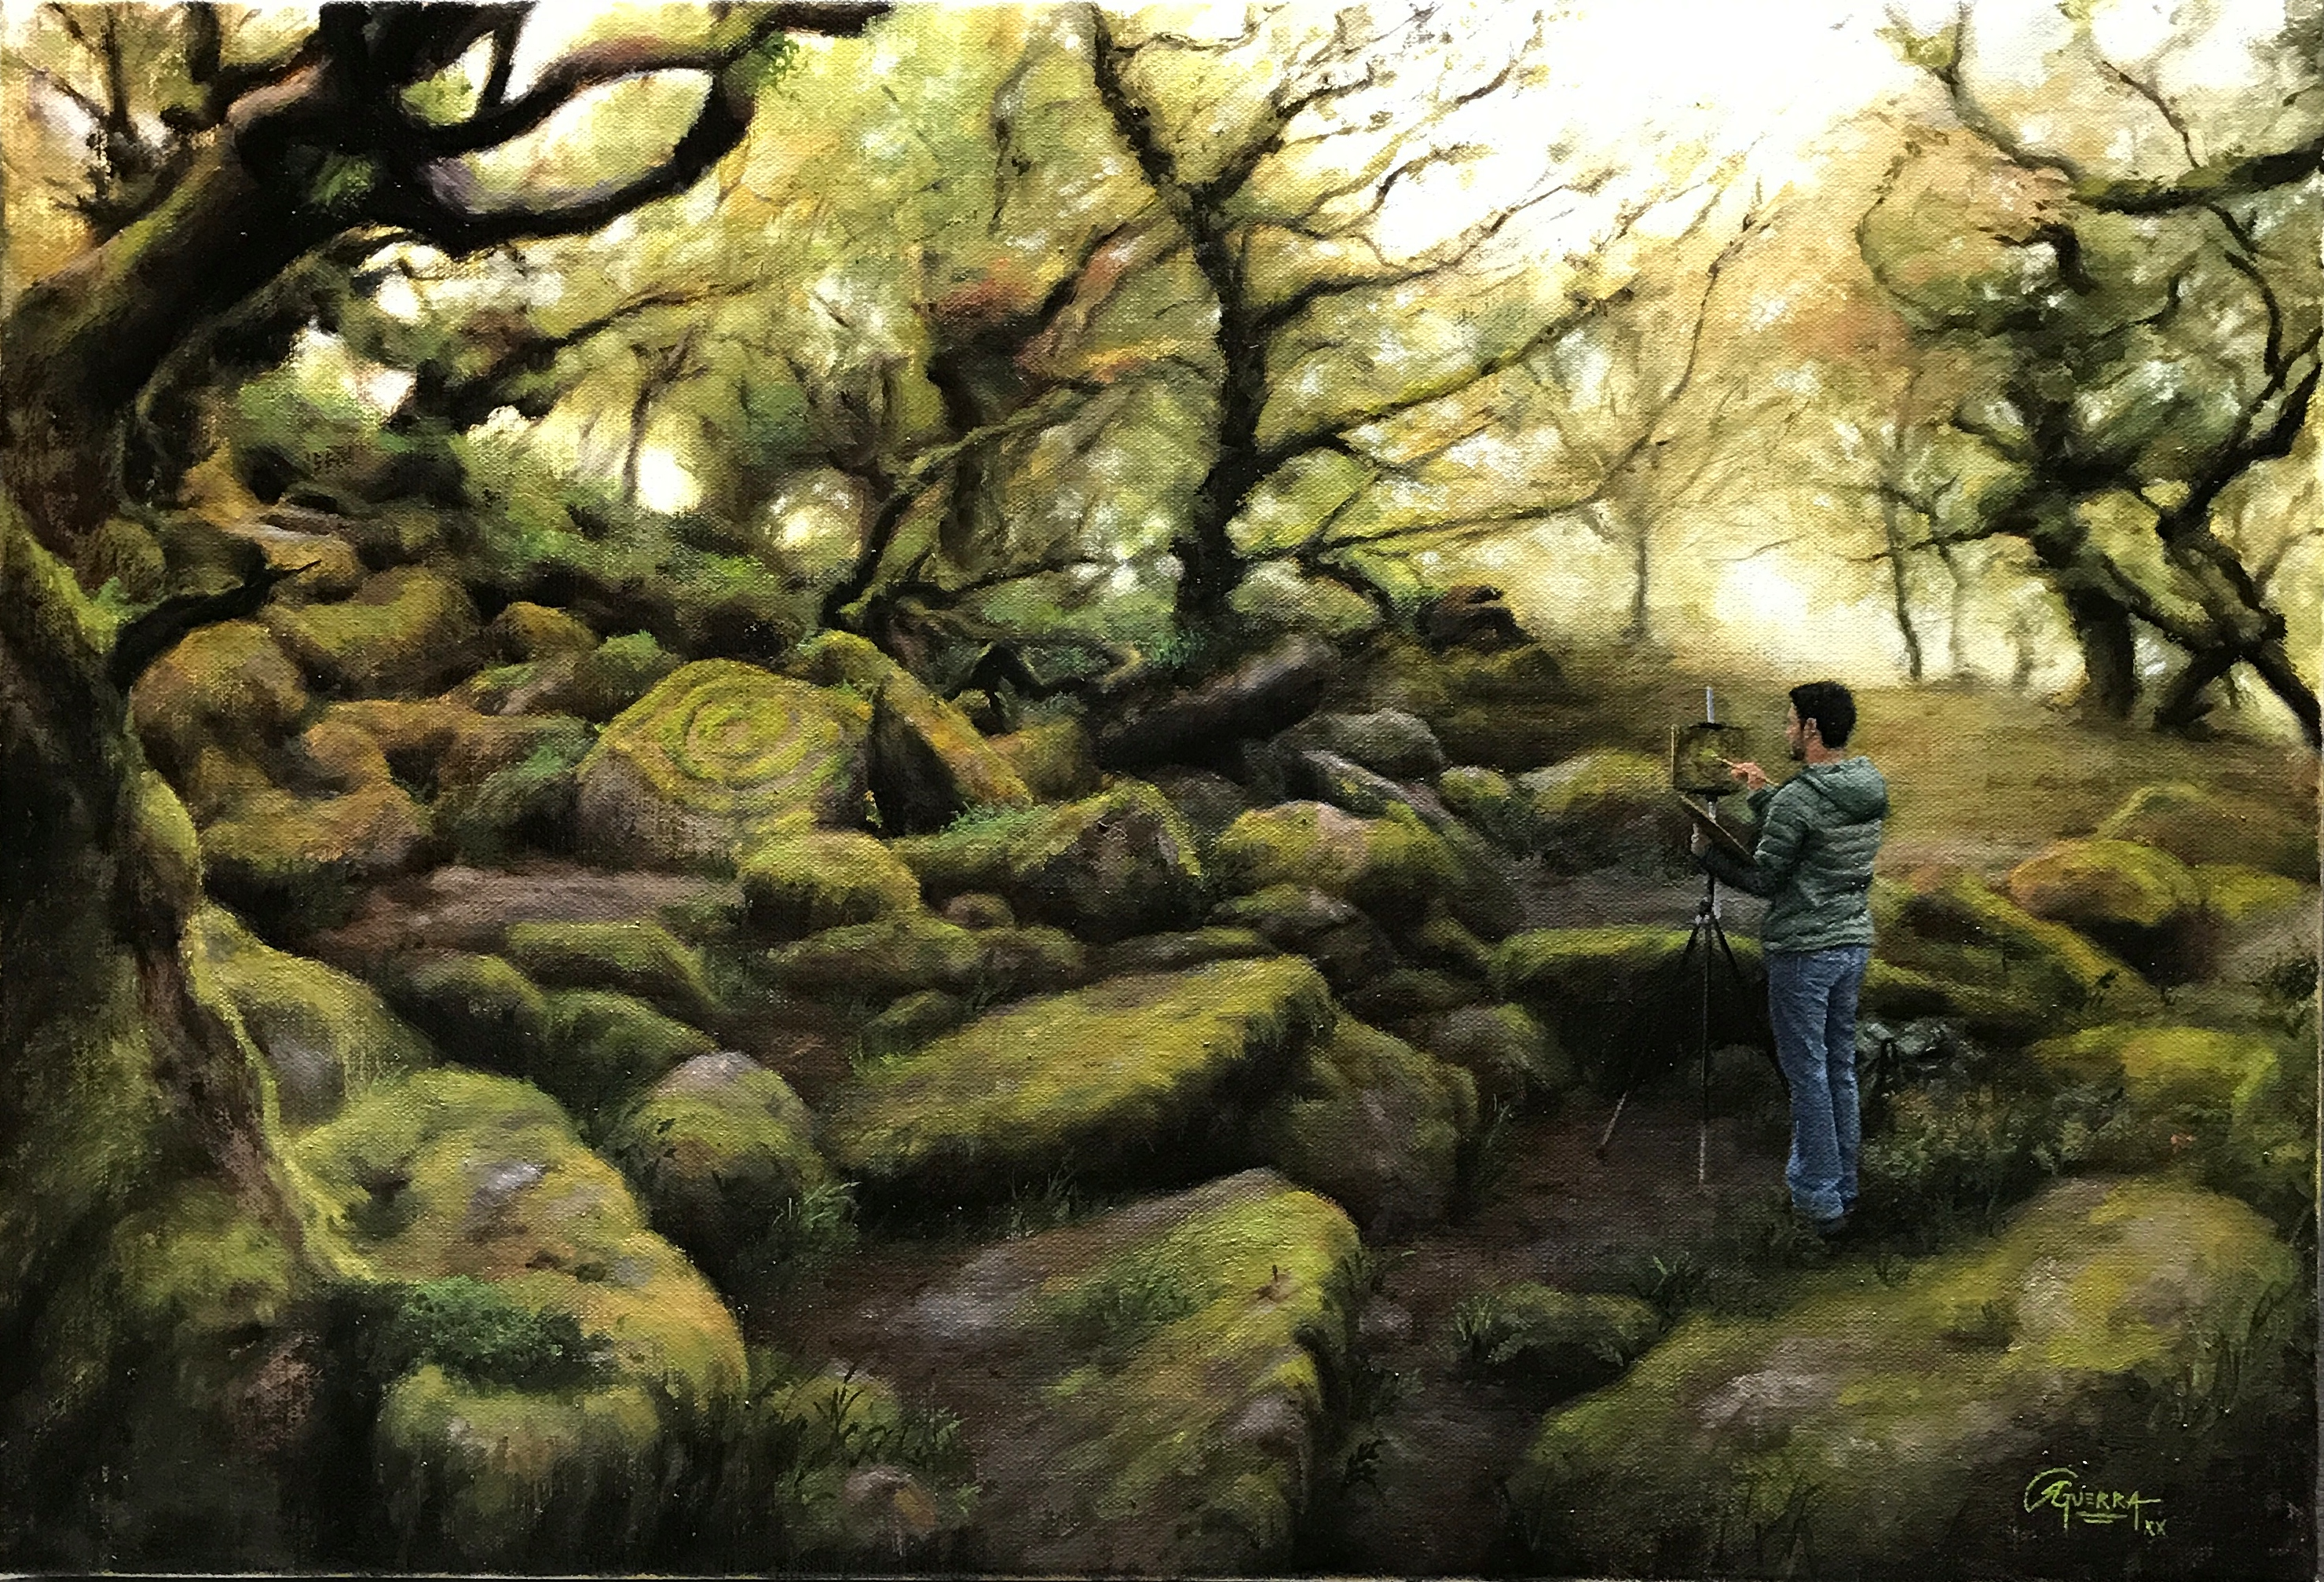 Plein Air Painting at Wistman's Wood, Rafael Guerra Painting